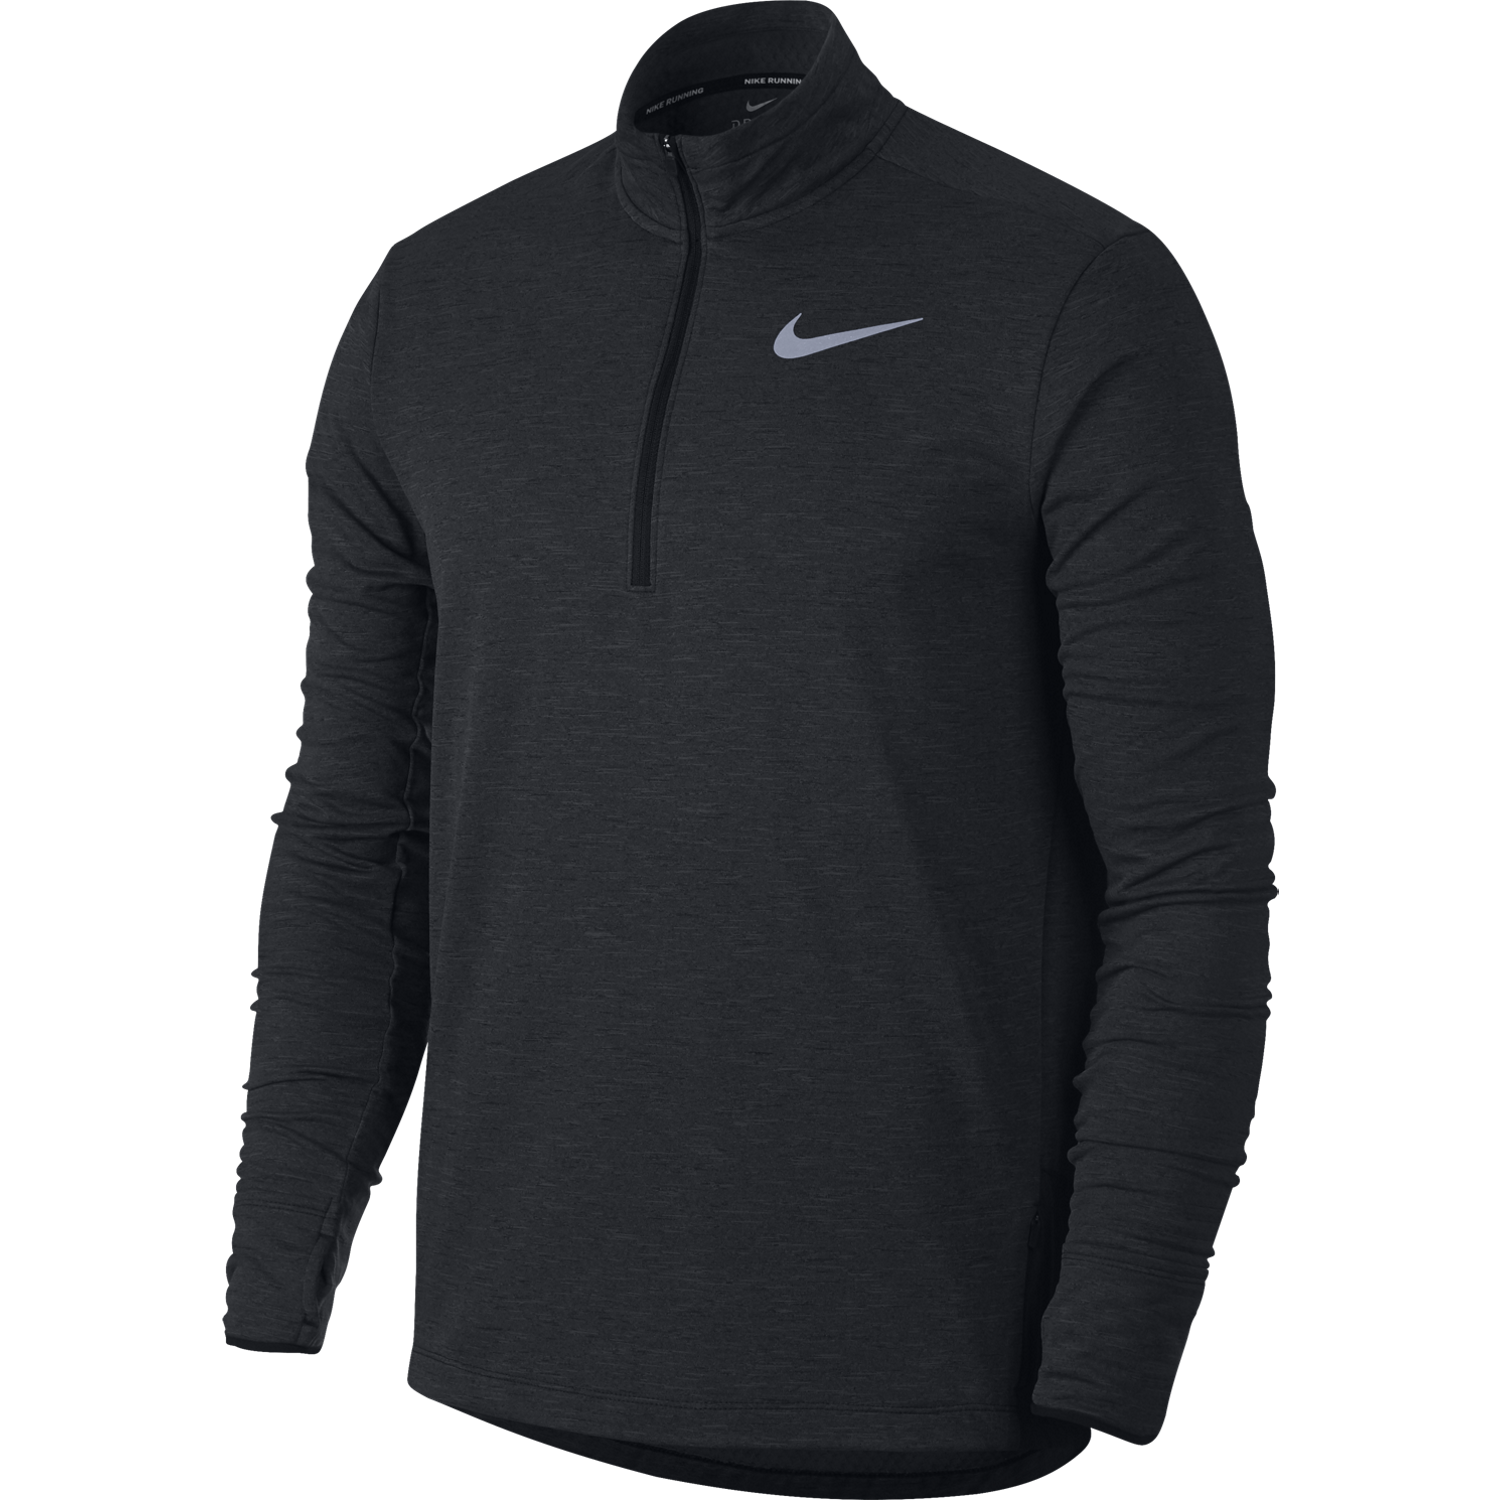 BLUZA MĘSKA NIKE SPHERE ELEMENT 2.0